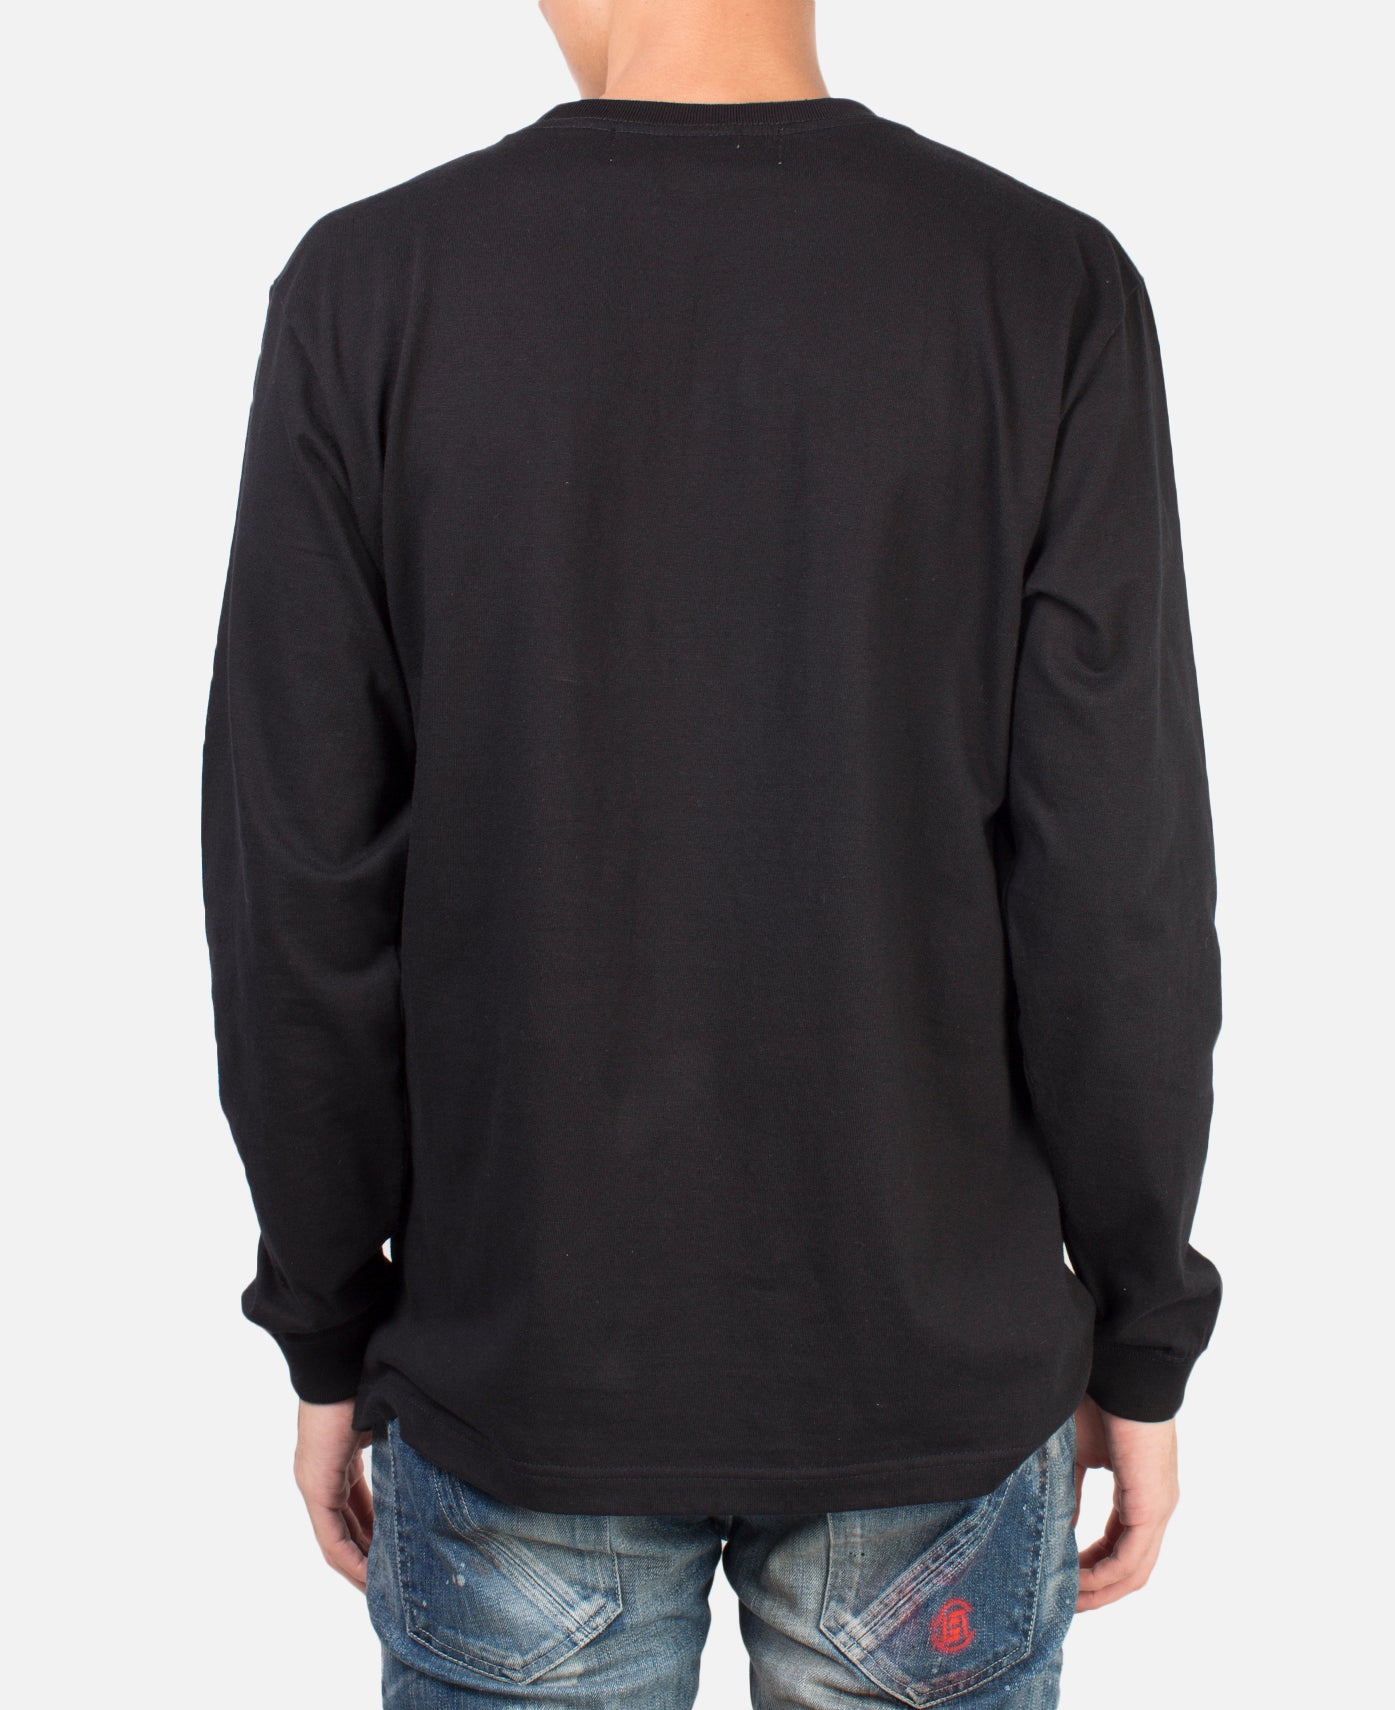 TONGUE L/S T-SHIRT BLACK